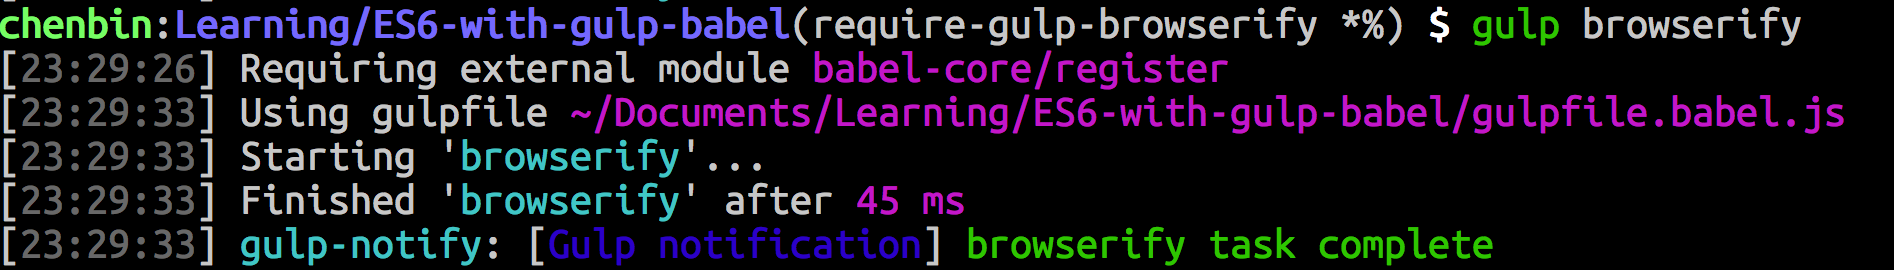 gulp-browserify